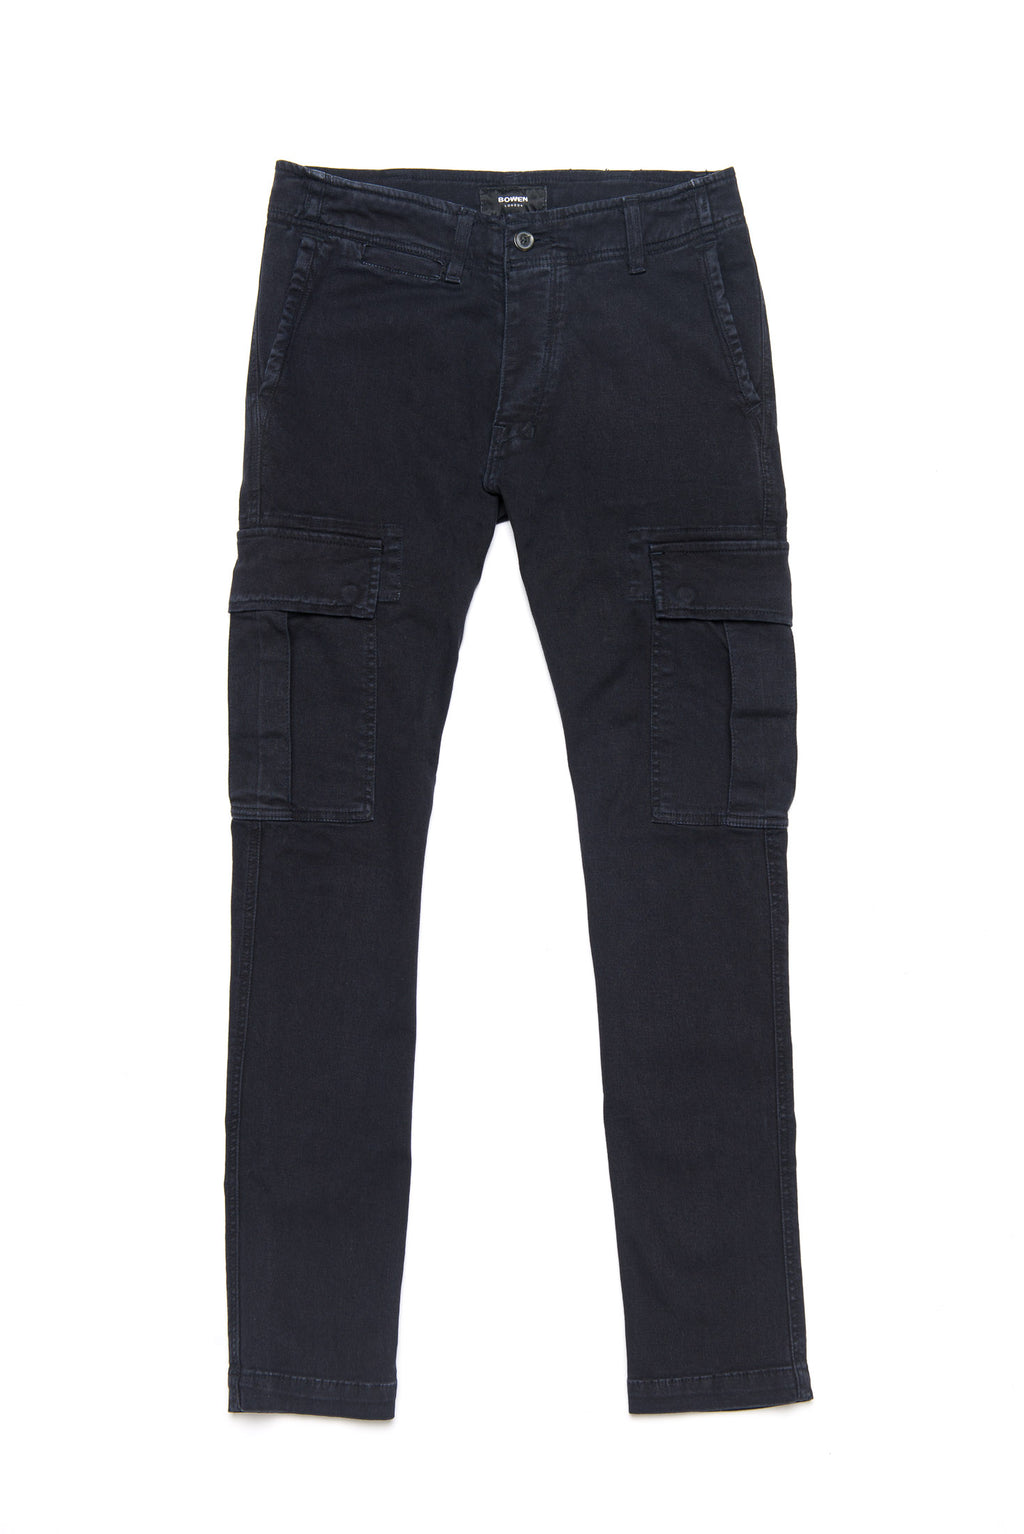 Pantalon Astro Pocket